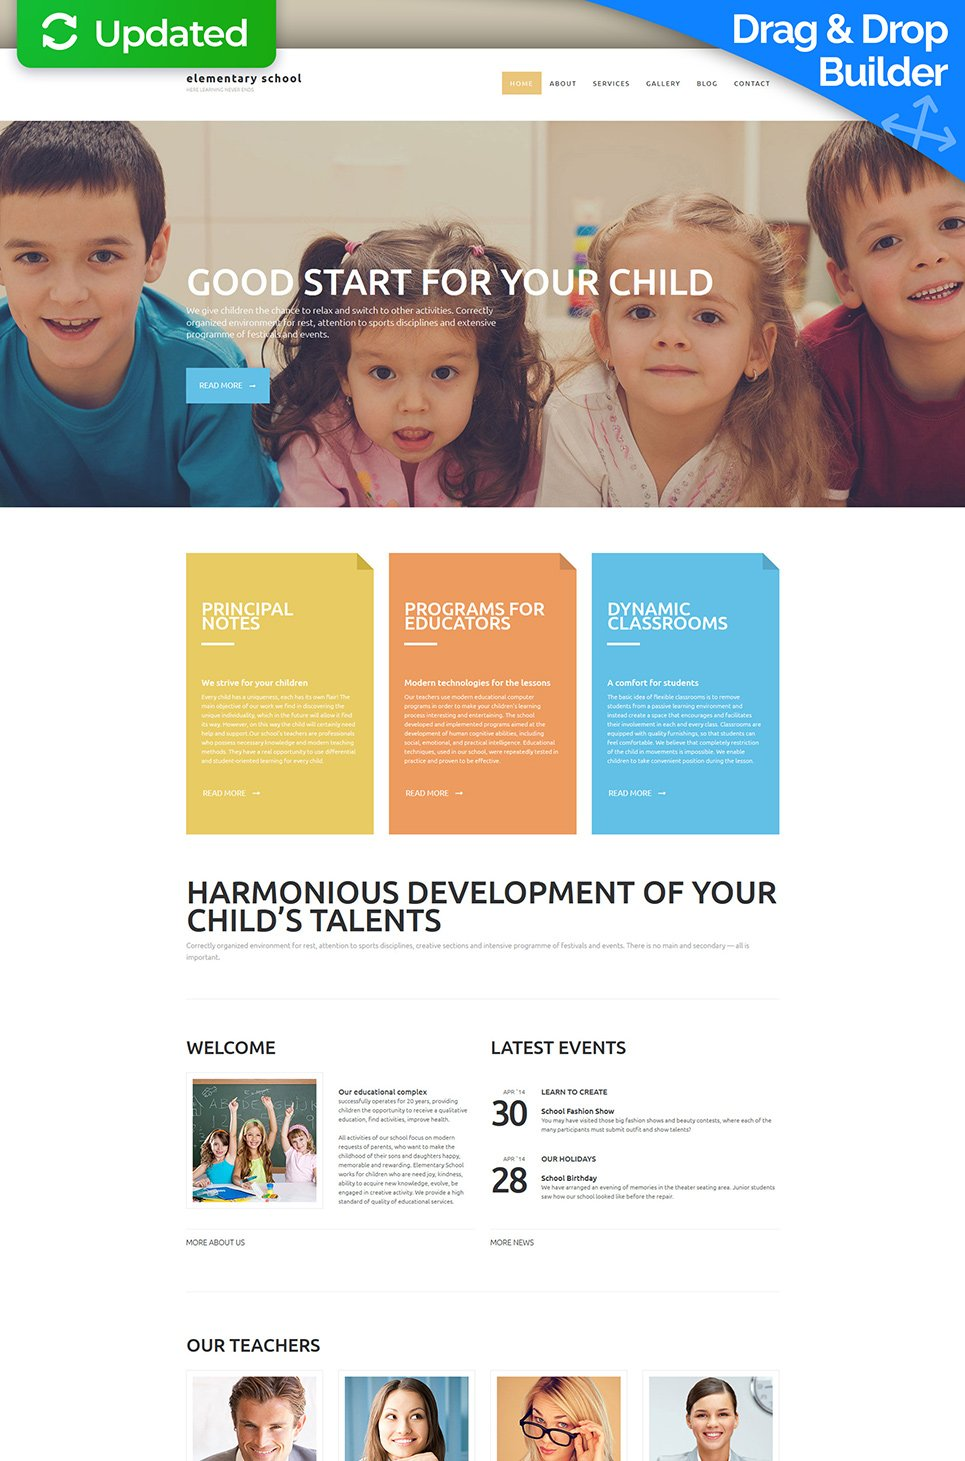 Responsive site for elementary school